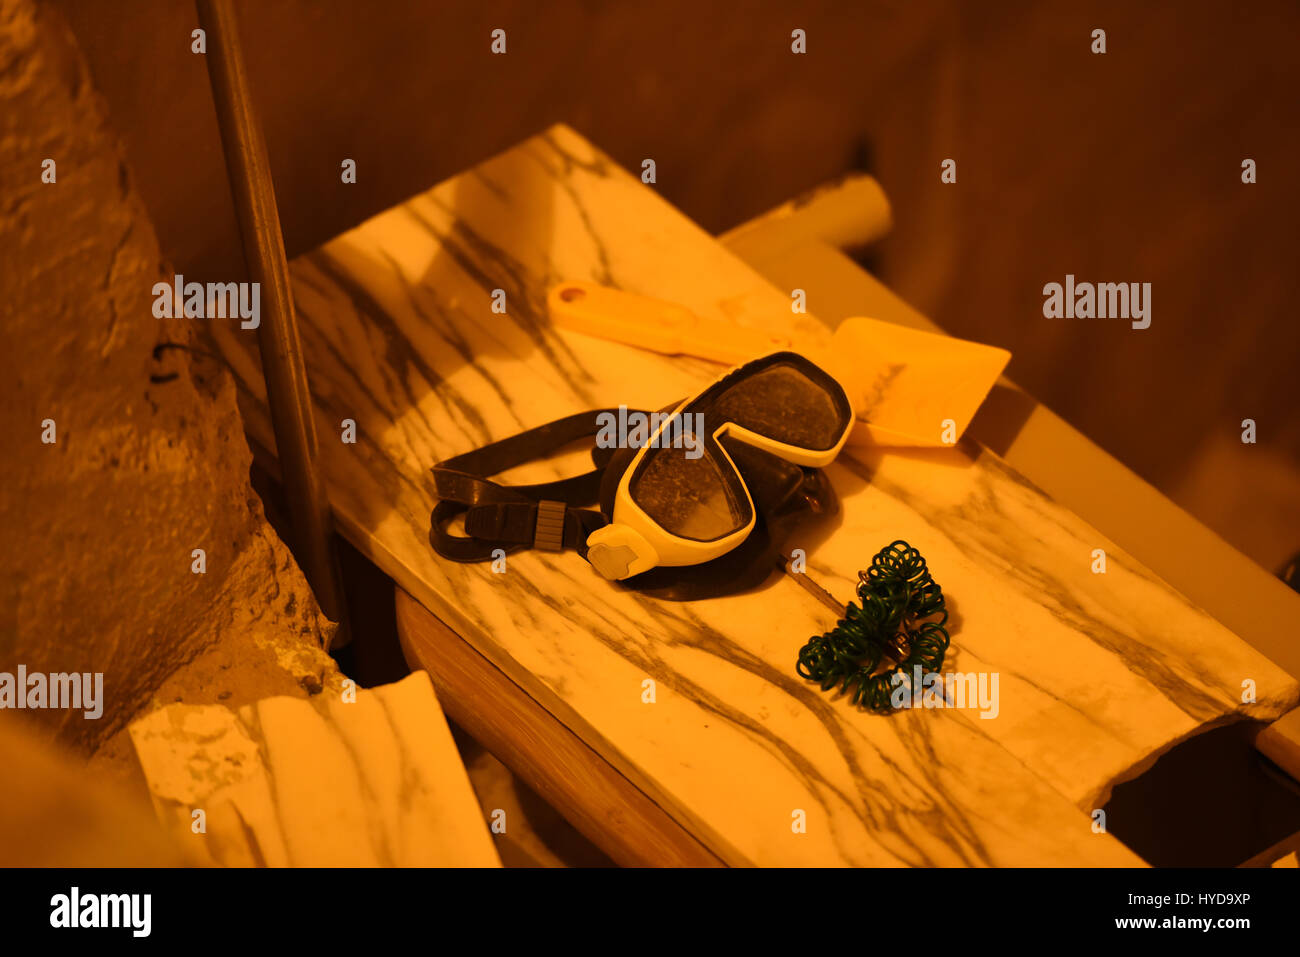 Diving goggles placed on a bench for tomorrow - Stock Image